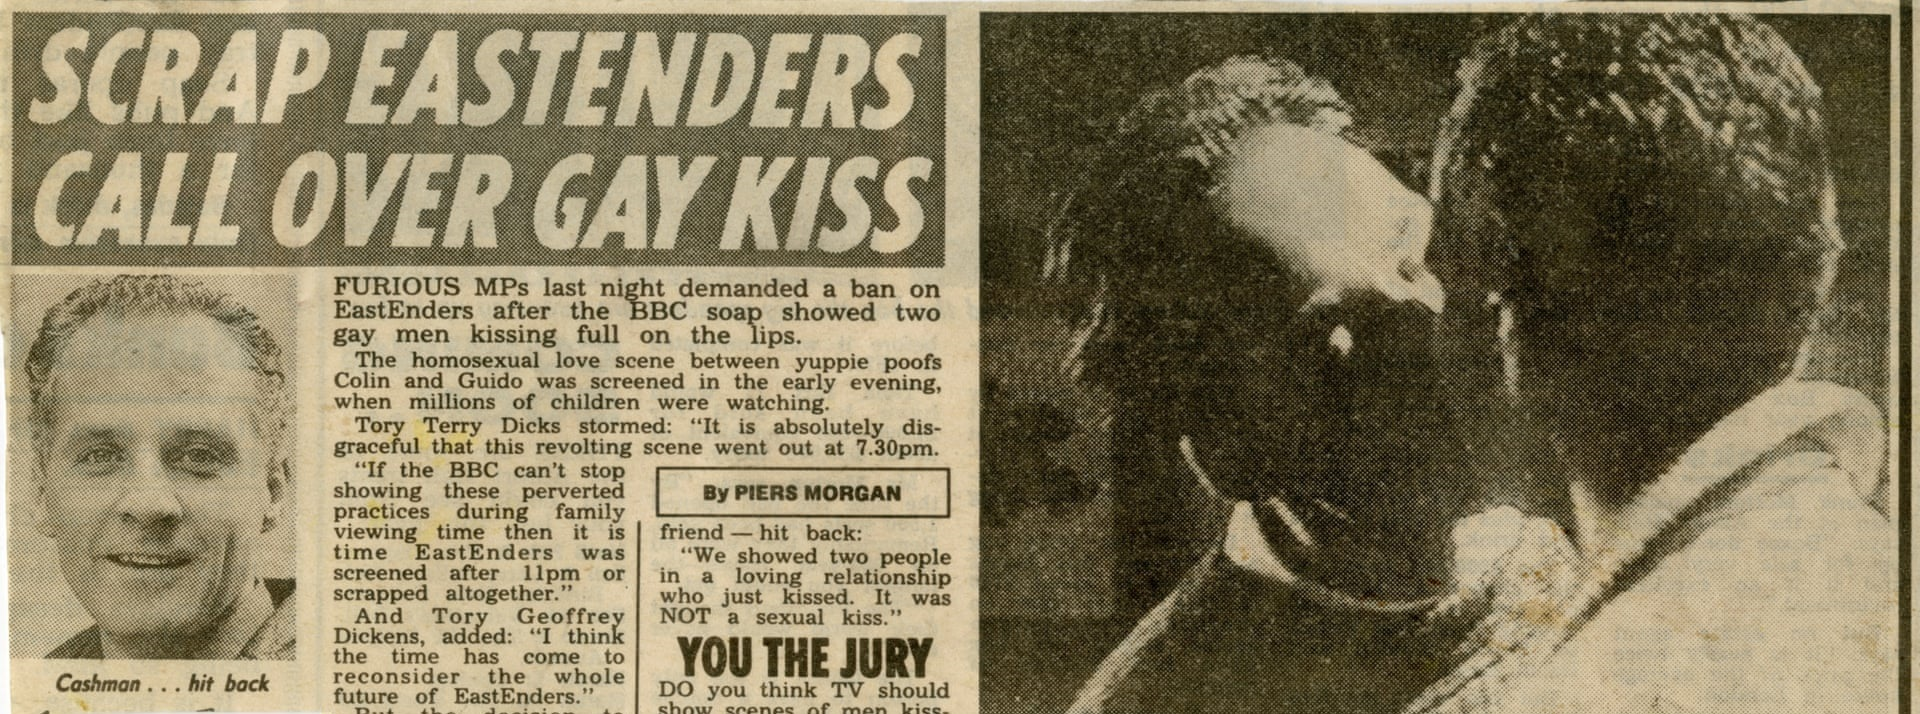 Piers Morgan penned the article for The Sun in 1989